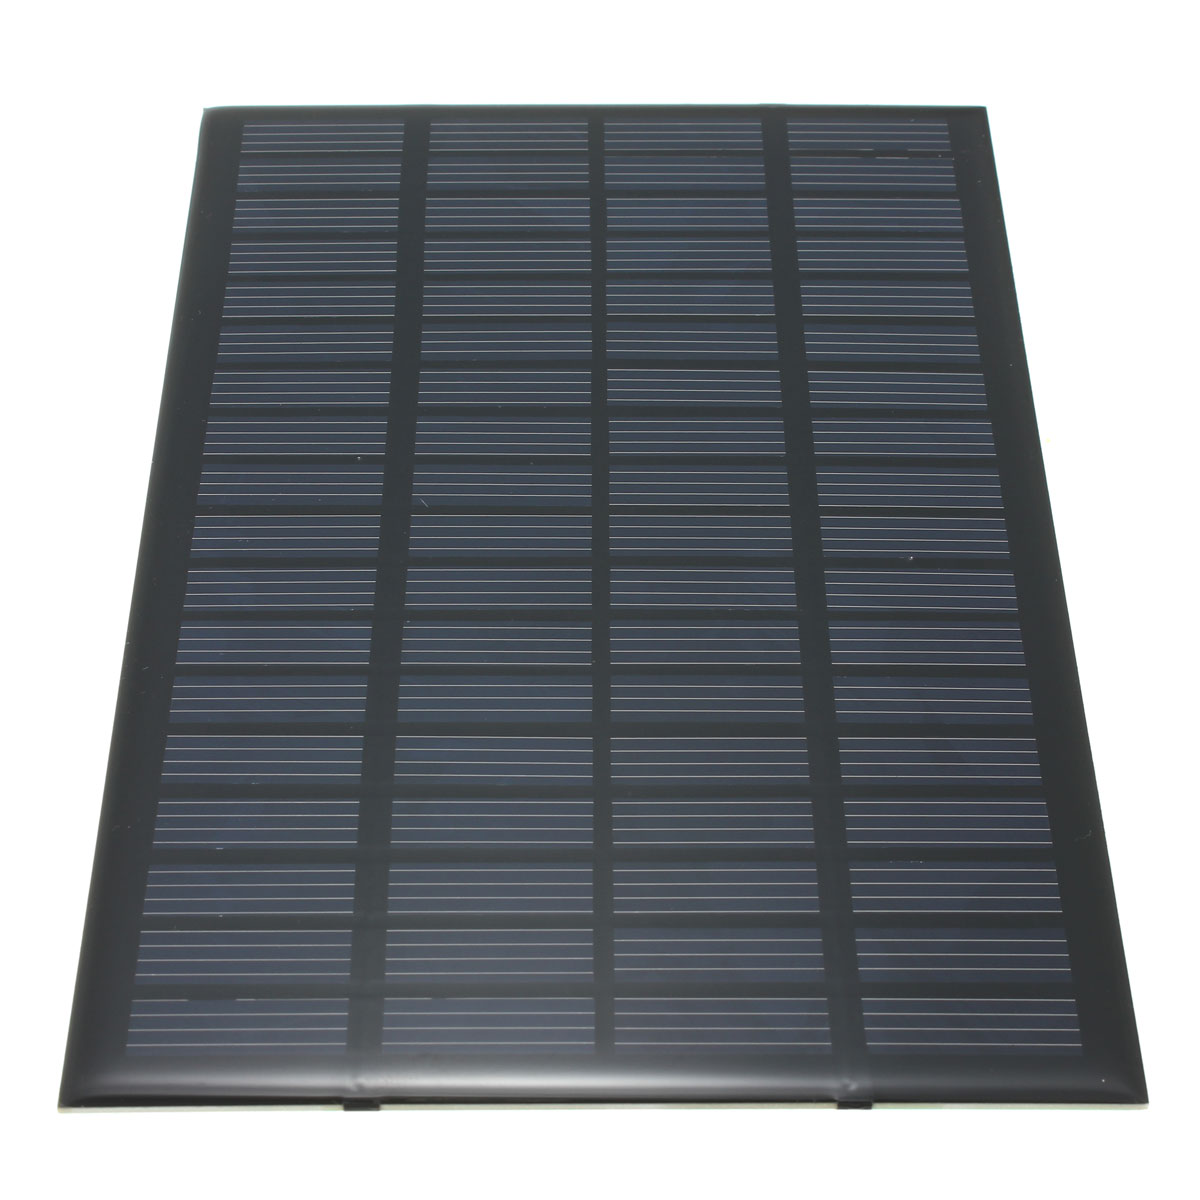 Excellent quality 18V 2.5W Polycrystalline Stored Energy Power Solar Panel Module System Solar Cells Charger 19.4x12x0.3cm(China (Mainland))